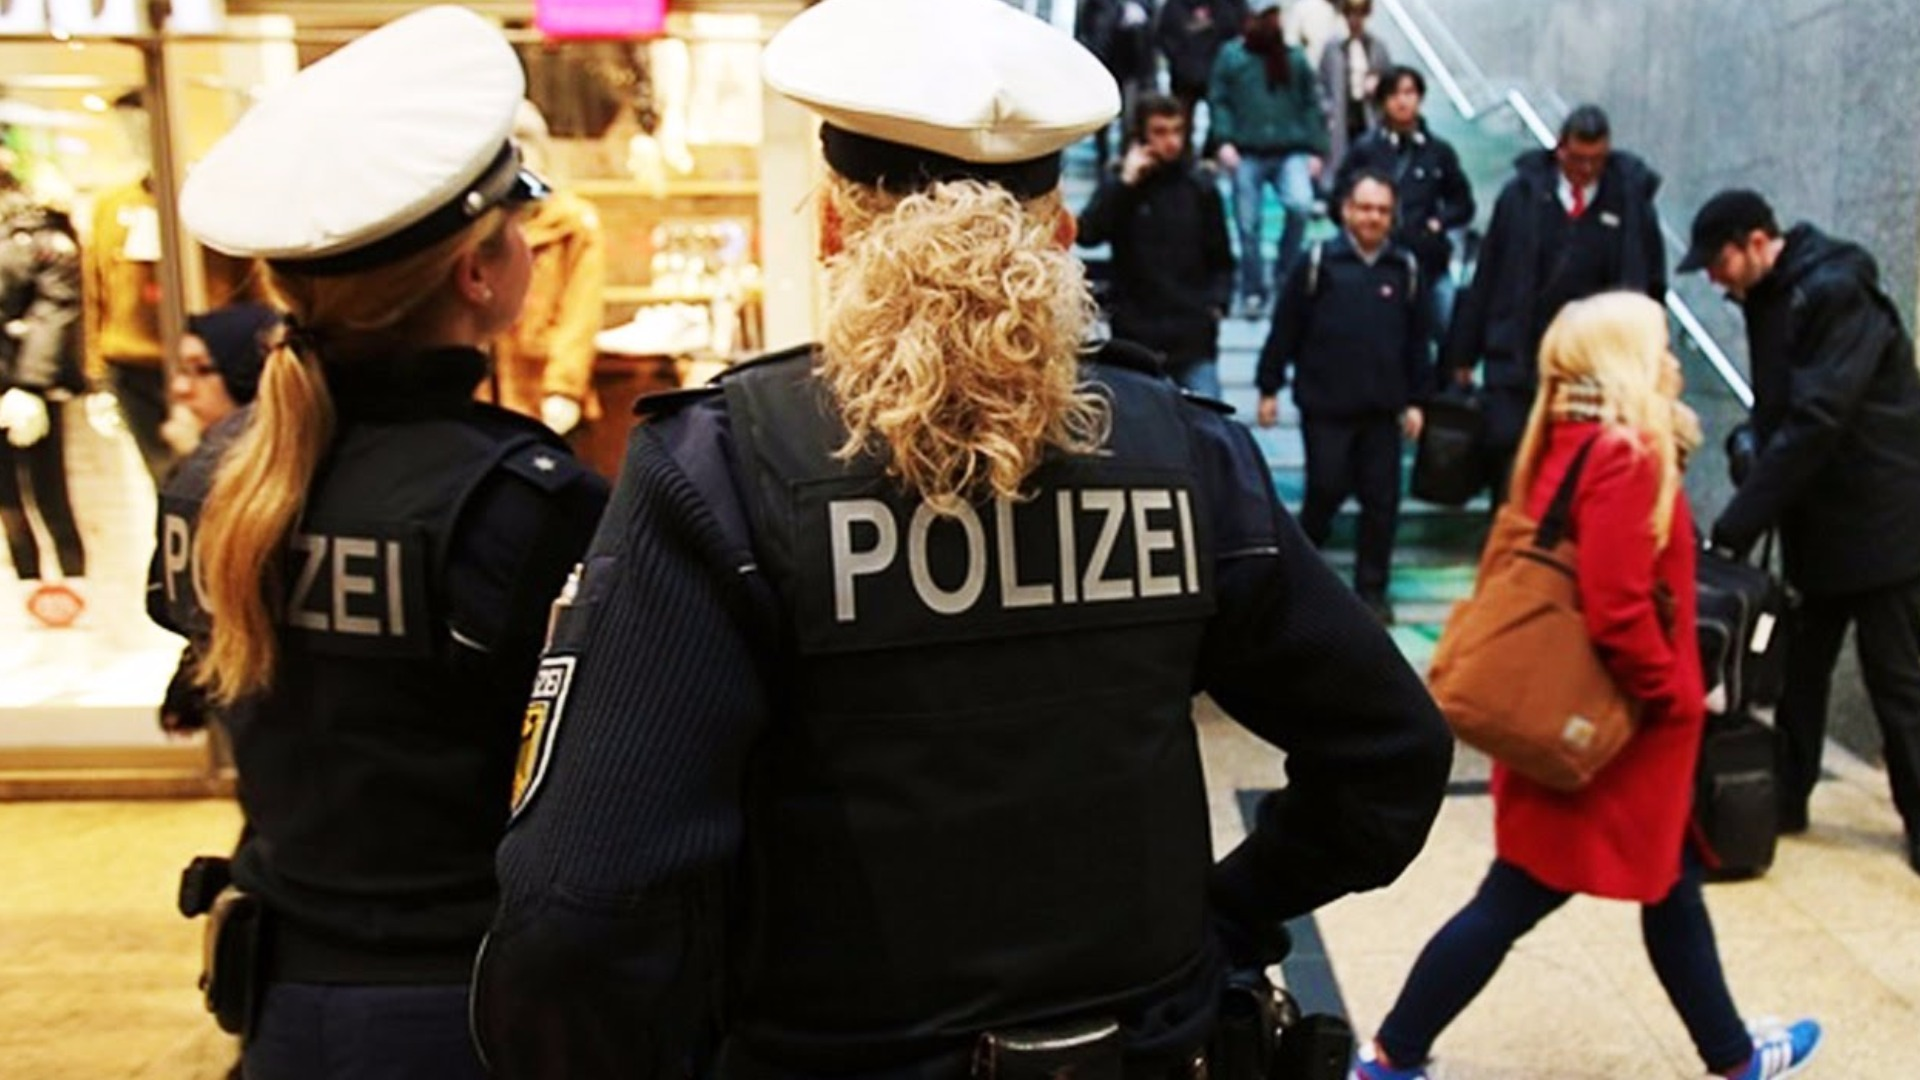 Cologne: one man seriously injured in axe attack and shooting in Germany